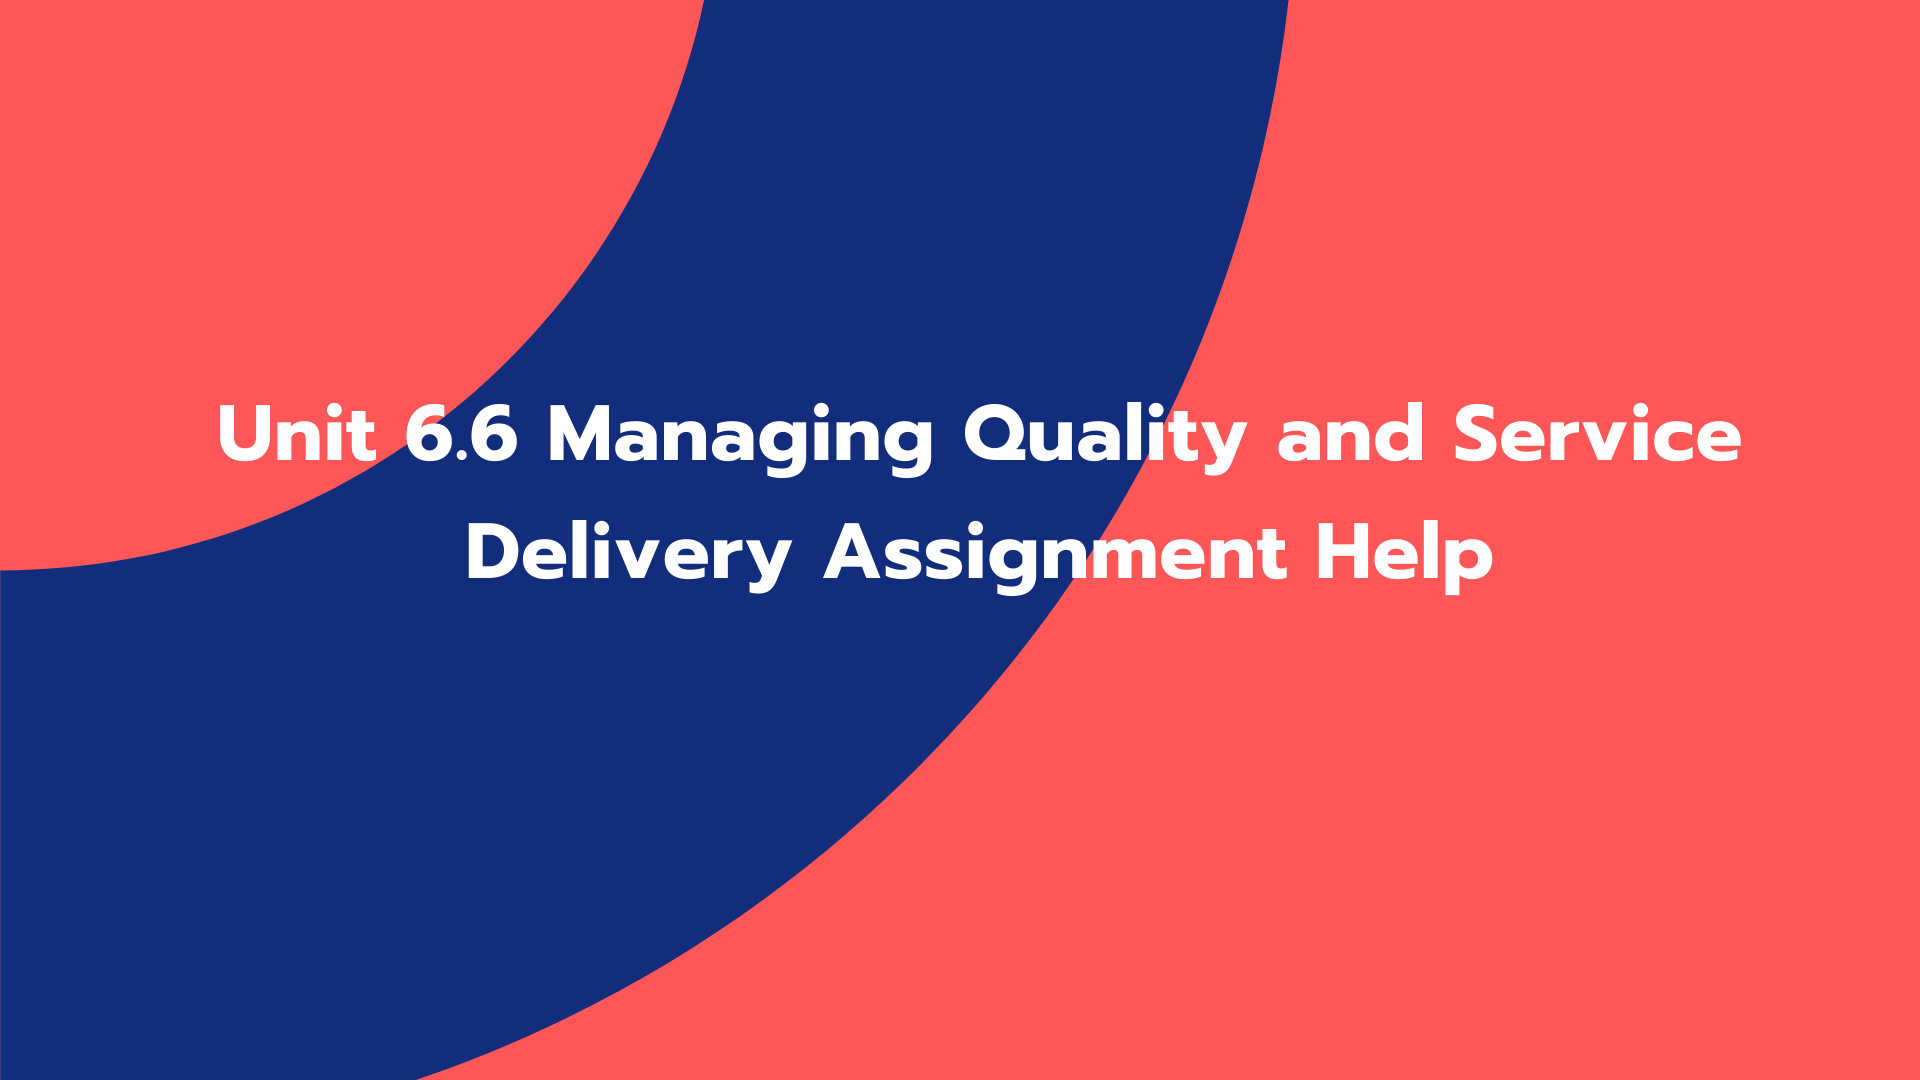 Unit 6.6 Managing Quality and Service Delivery Assignment Help